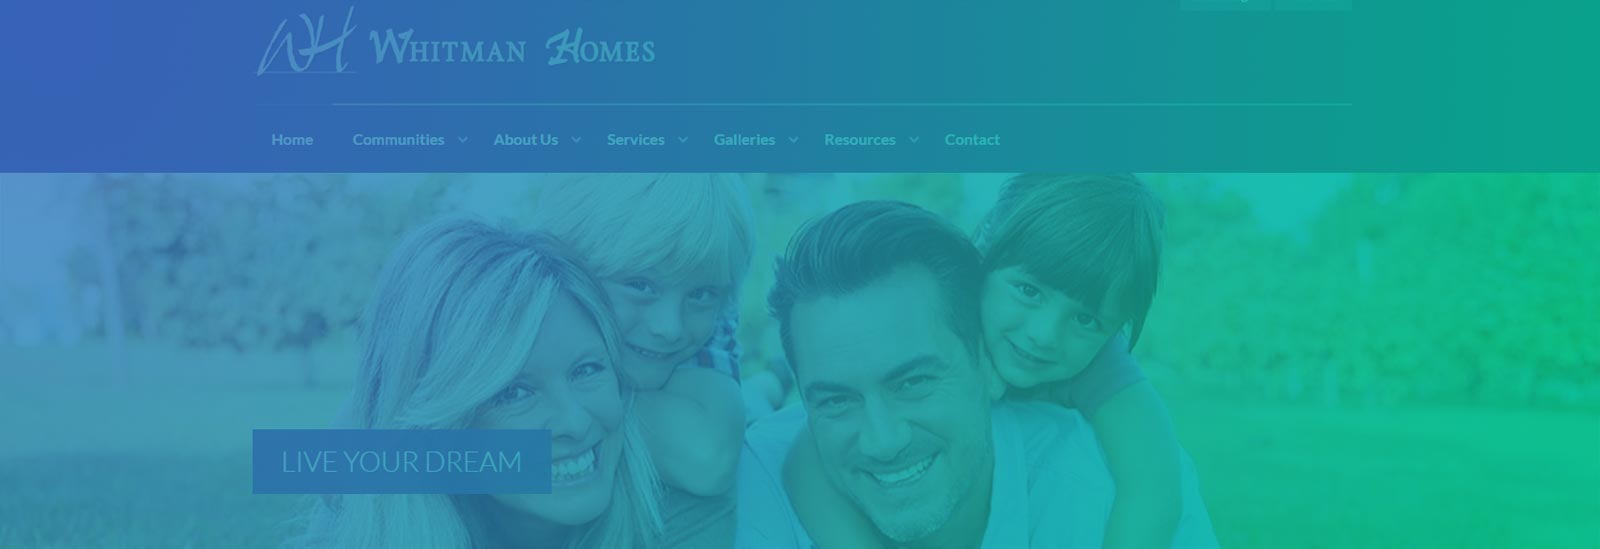 New Website Launched for Whitman Homes